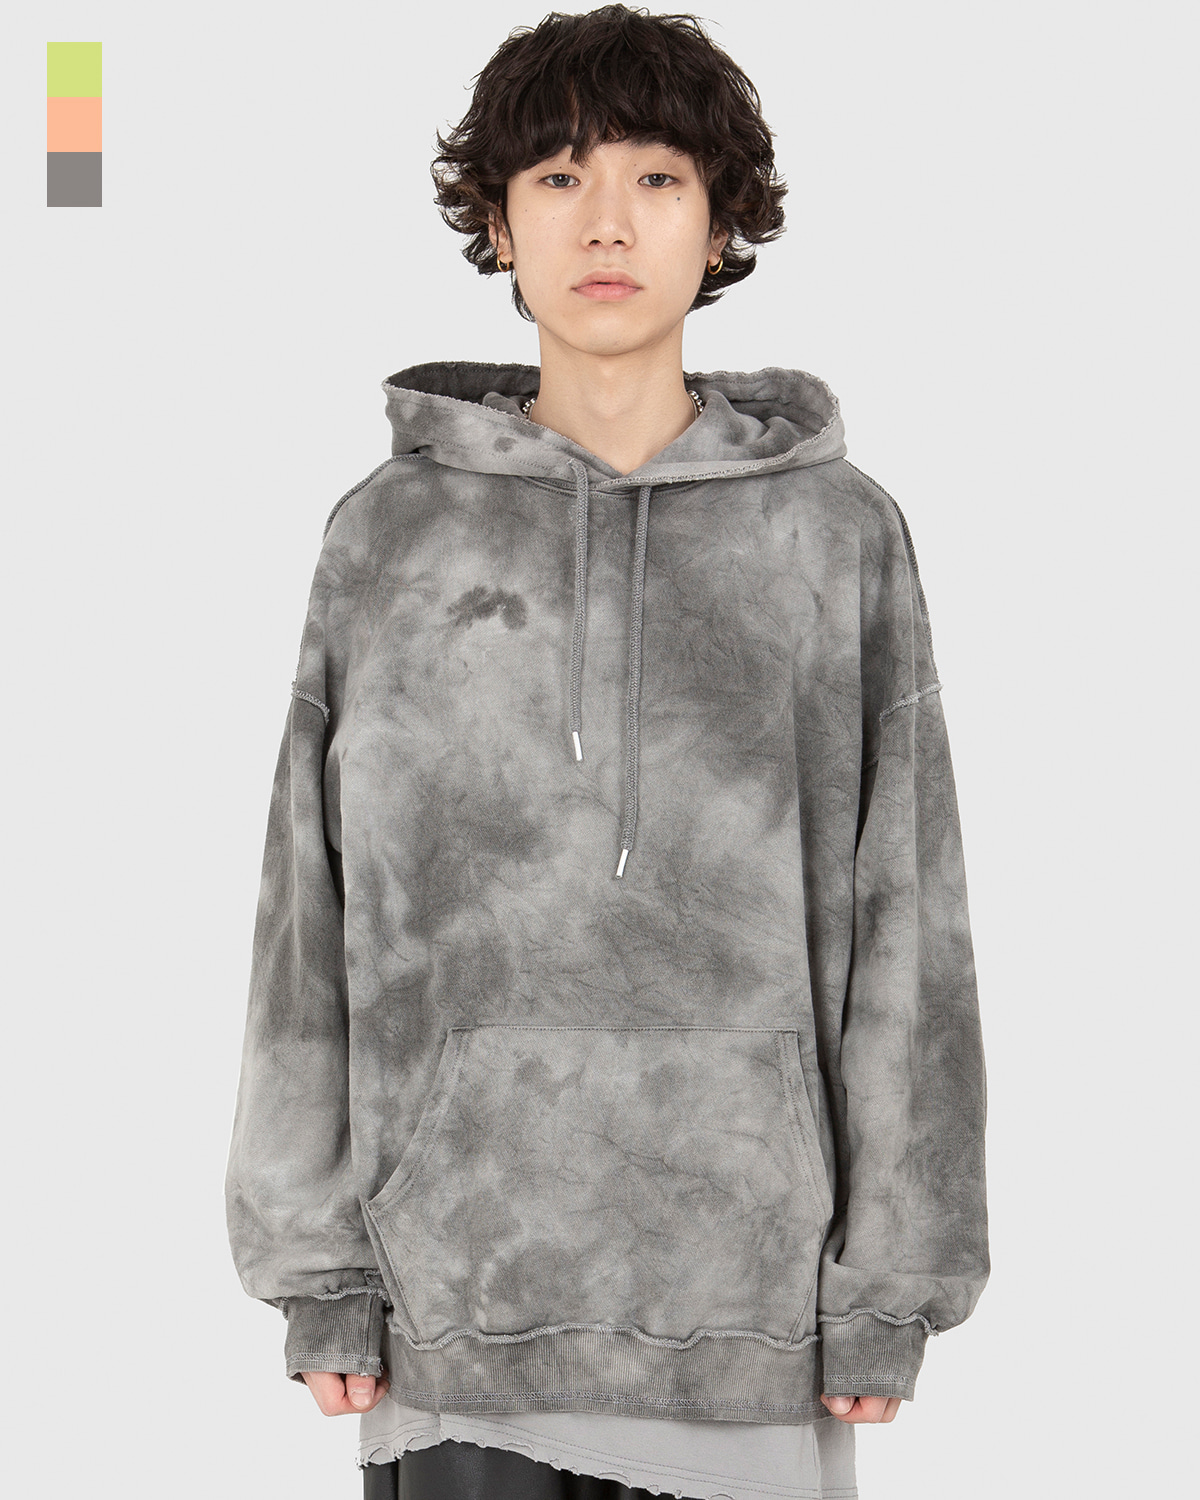 raucohouse-TIE DYE WASHED OVER FIT HOODIE - RAUCO HOUSE♡韓國男裝上衣